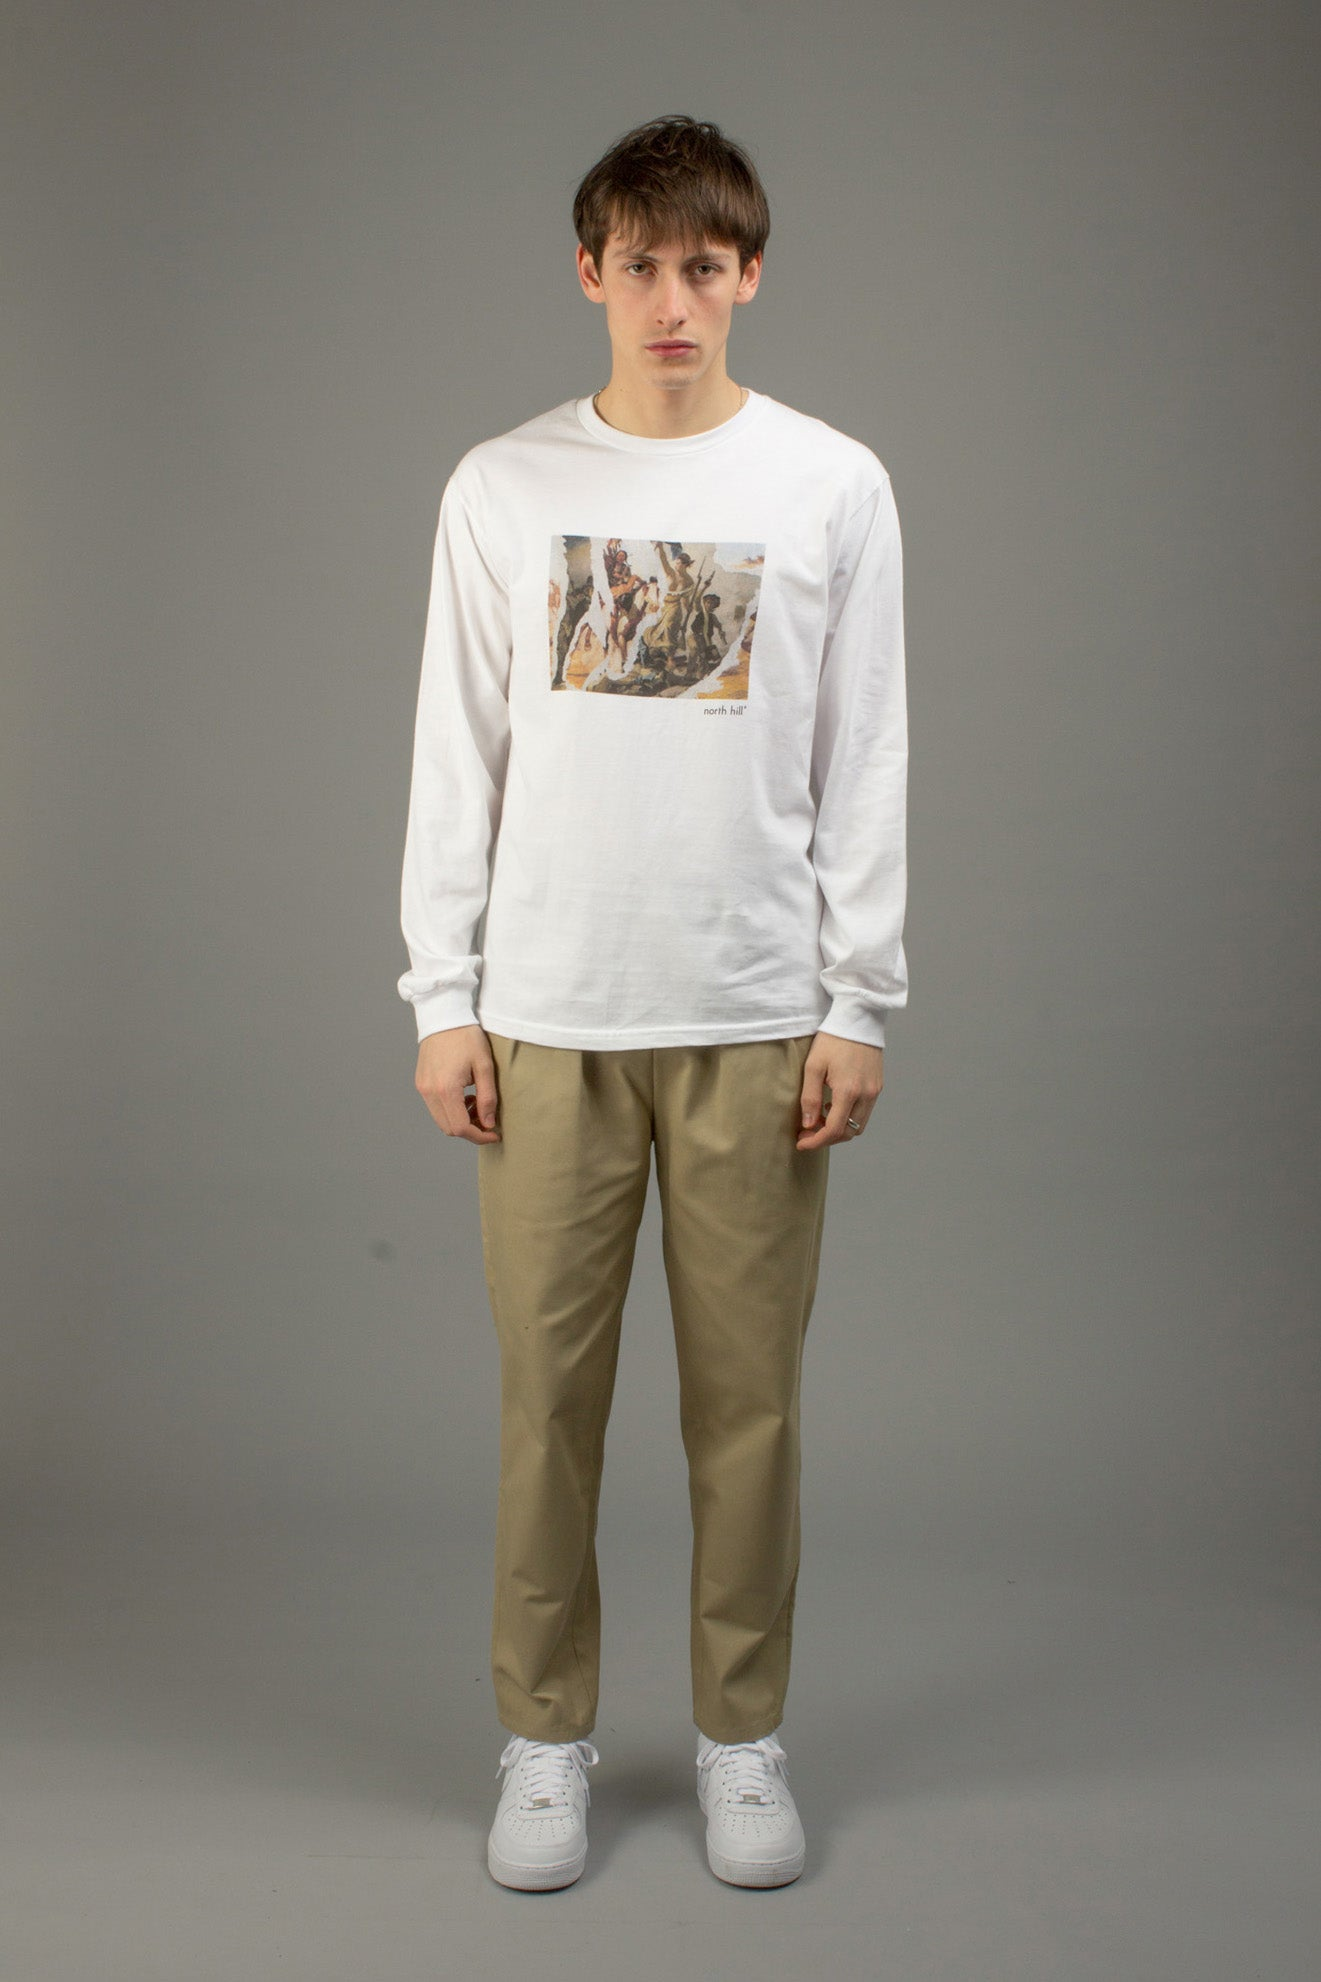 LIBERATED INDIANS LONGSLEEVE TEE